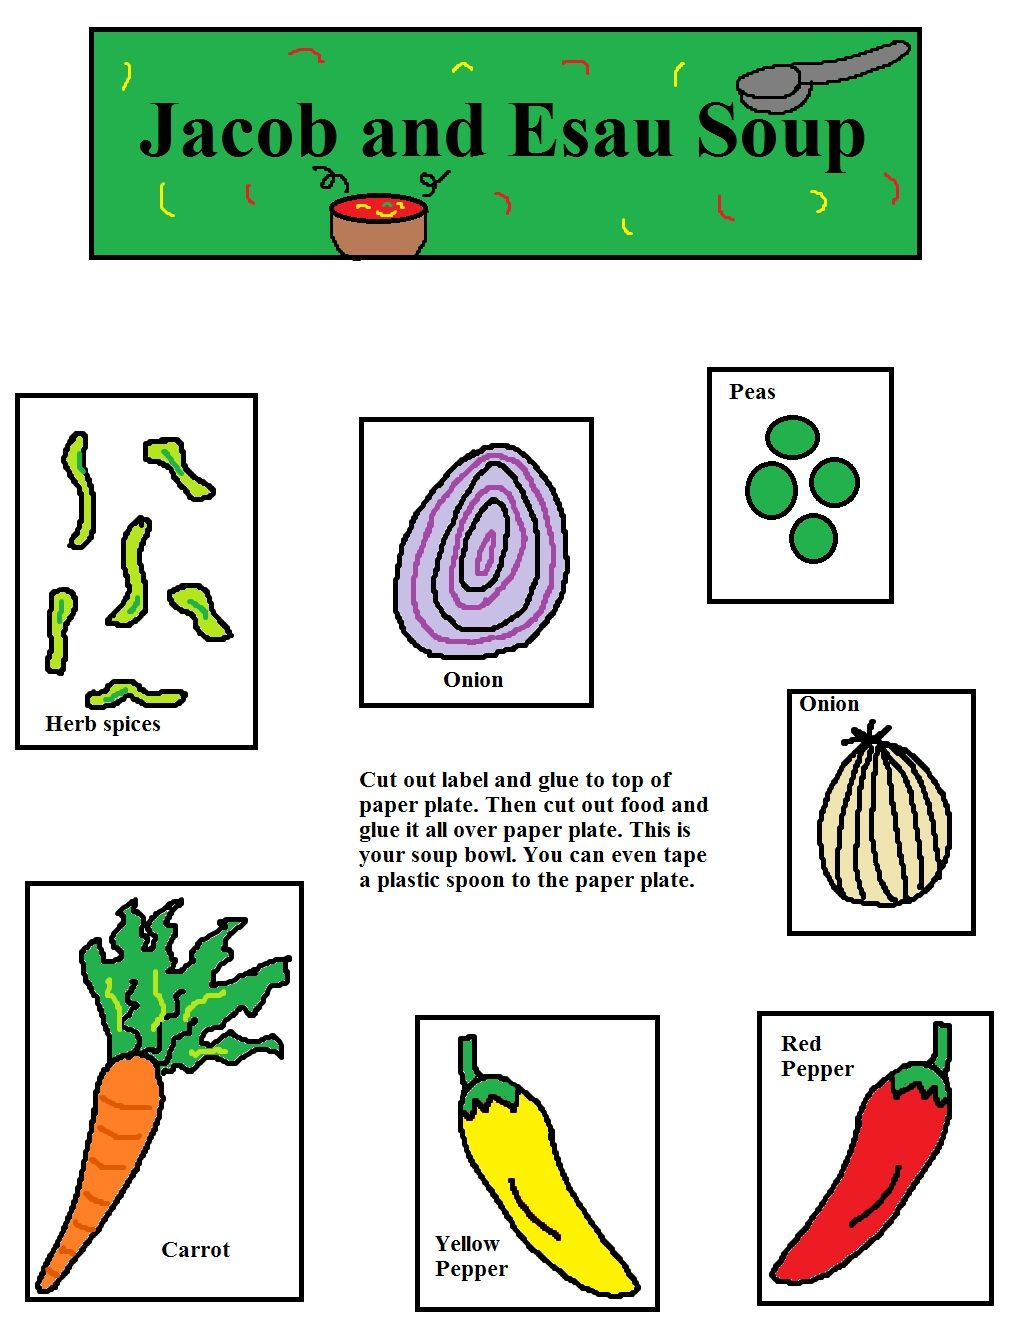 Jacob and esau soup activity 1019 1319 also for Jacob and esau crafts